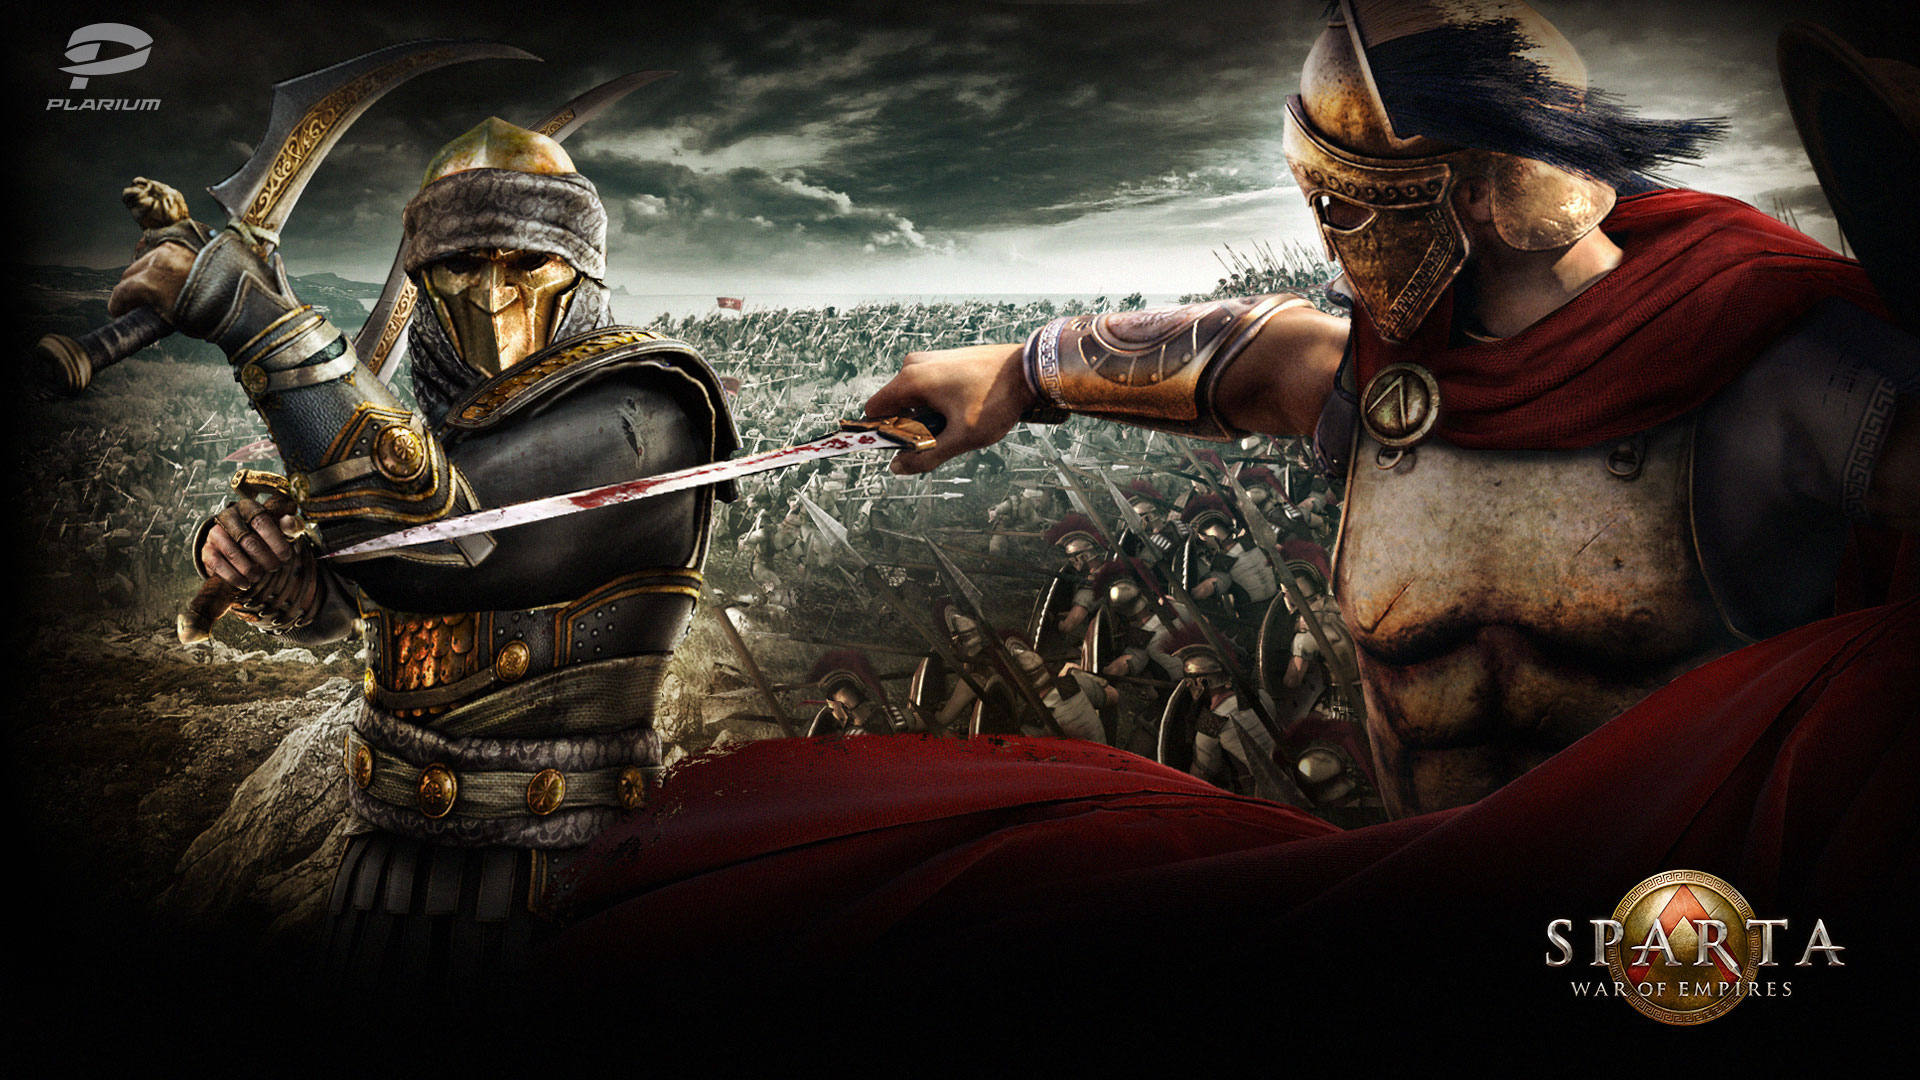 02-sparta-war-of-empires-wallpaper